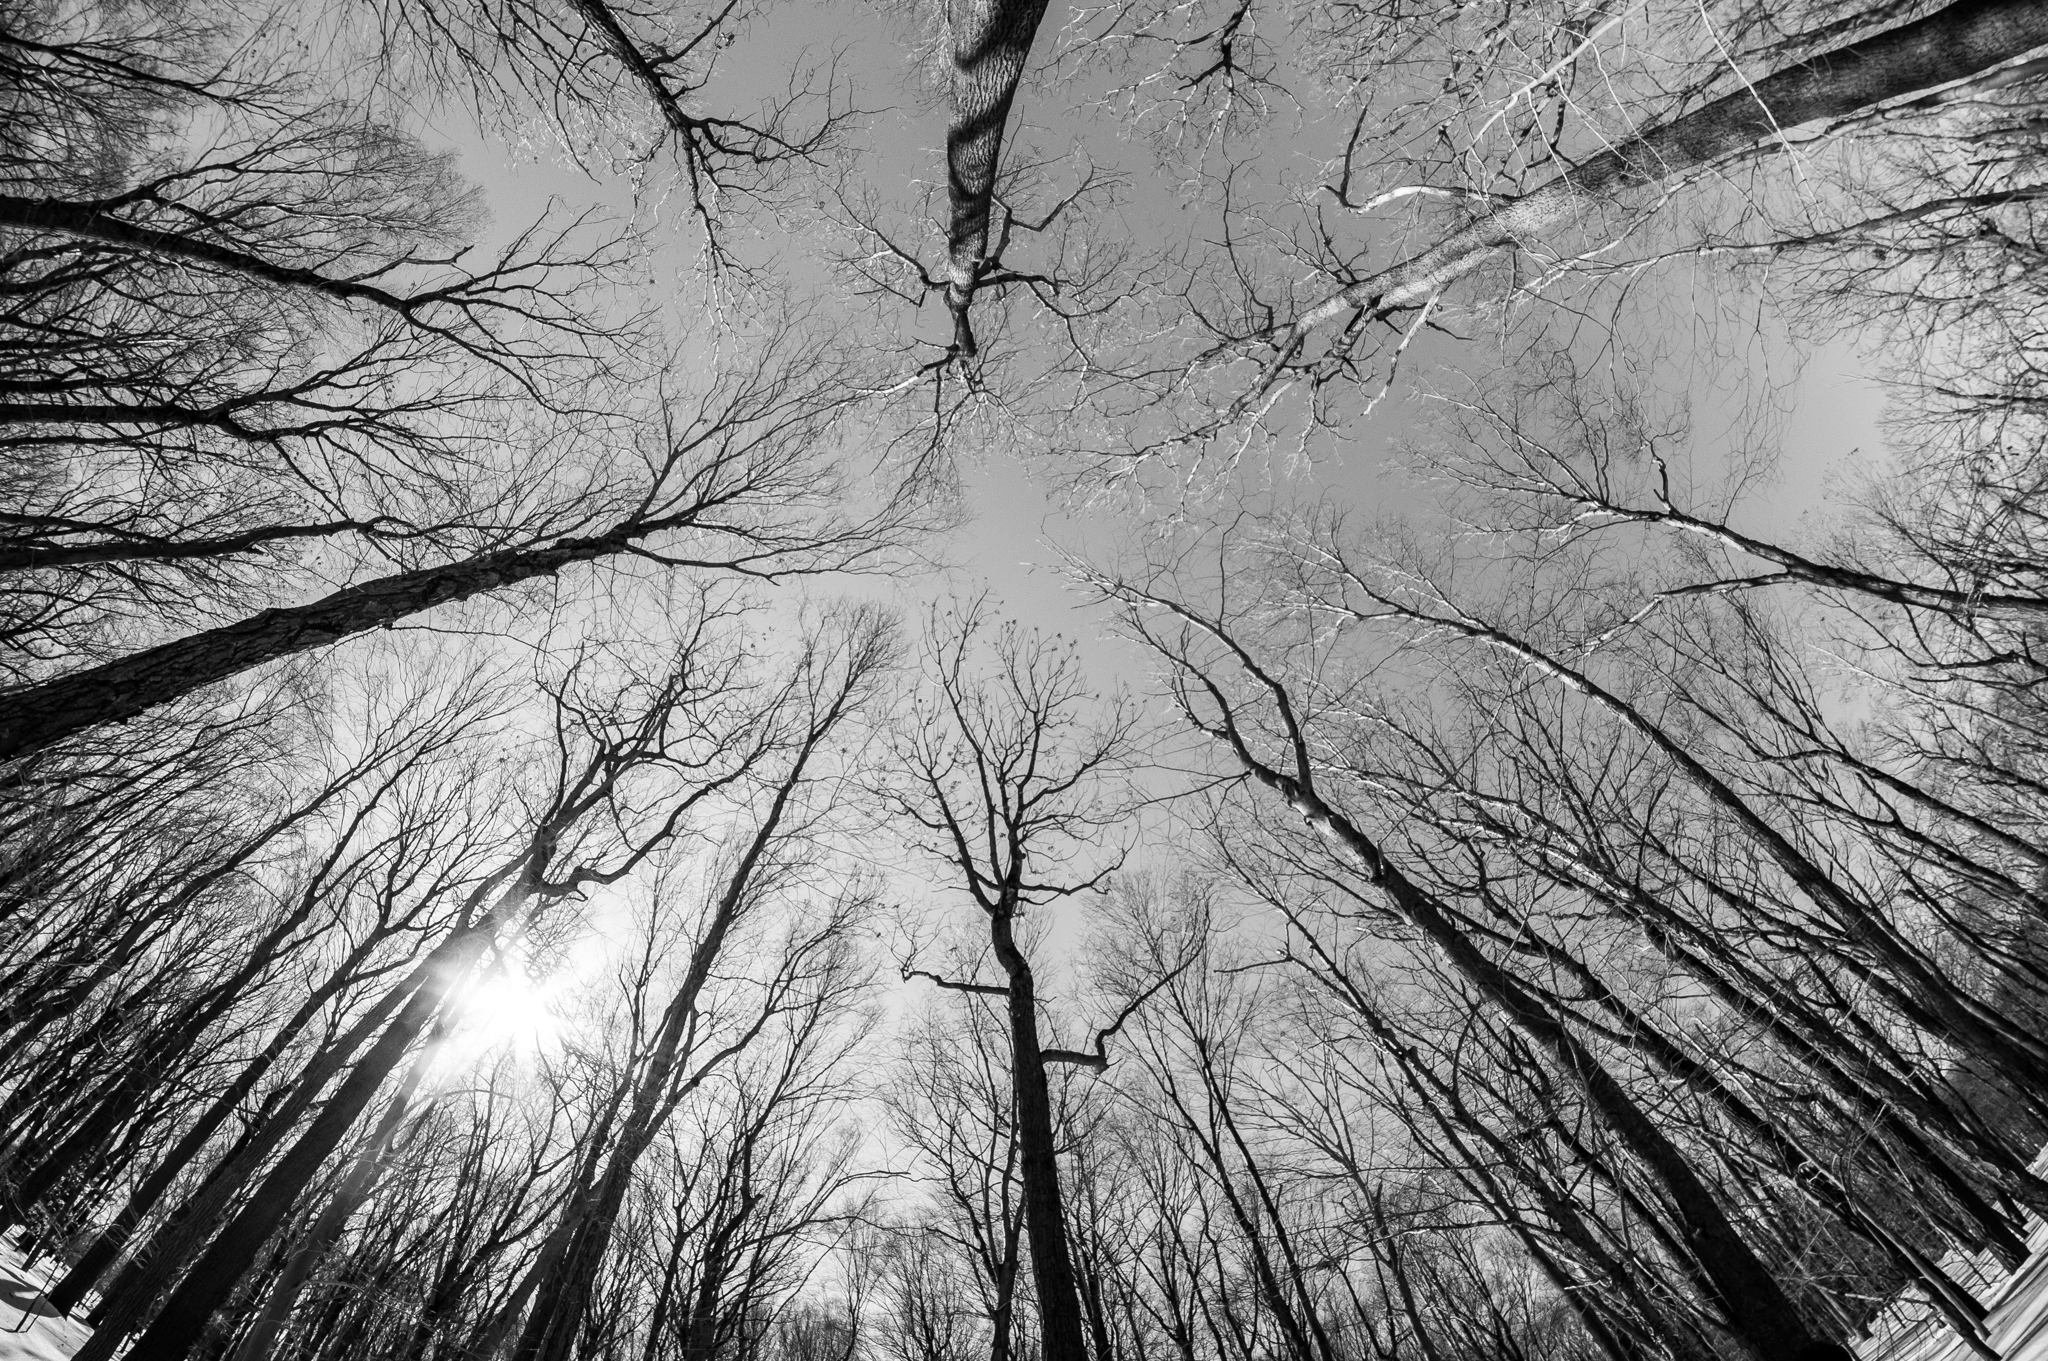 I used to process in black and white much more often — maybe I'll rediscover a passion for it. This is another from my early days as a photographer, back in 2014. It's from Jockey Hollow, at Morristown National Historical Park, during a winter hike.